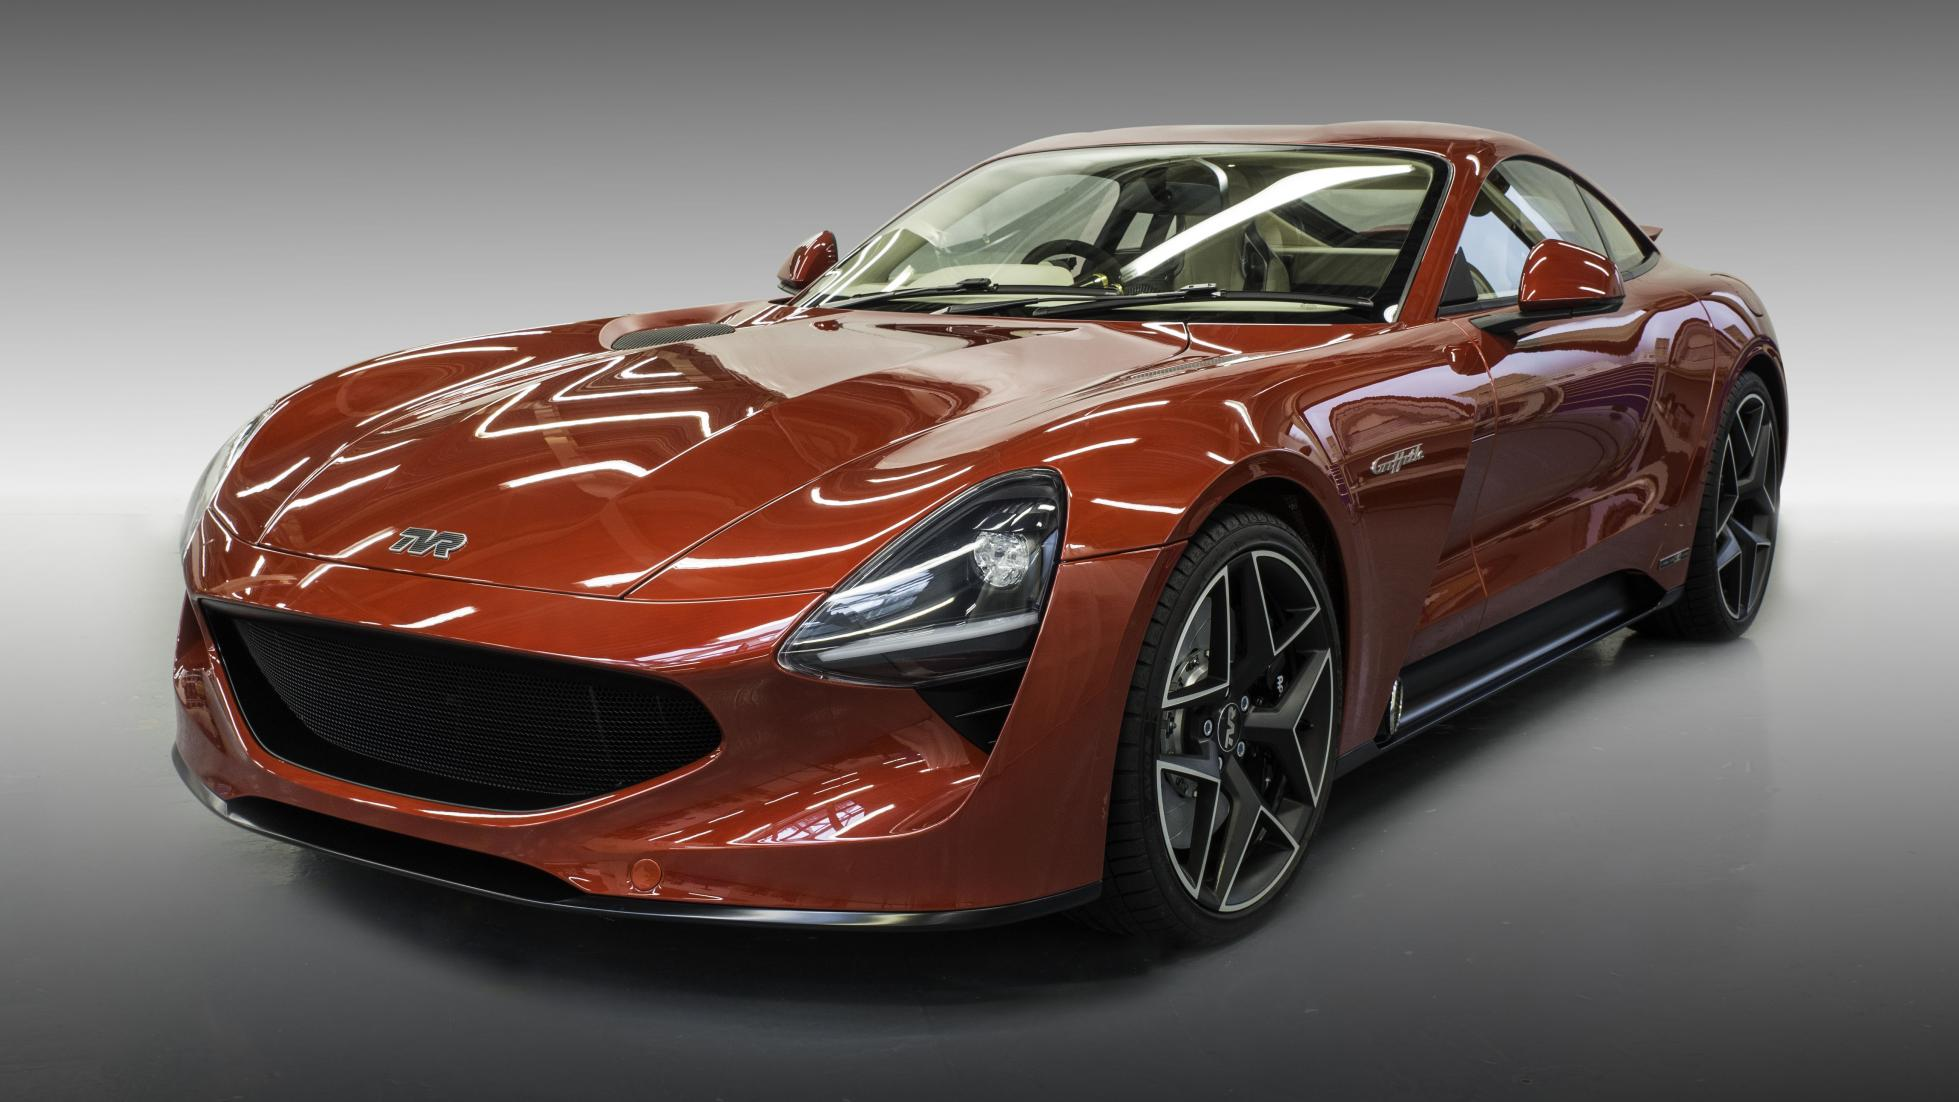 TVR Griffith unveiled at Goodwood Revival